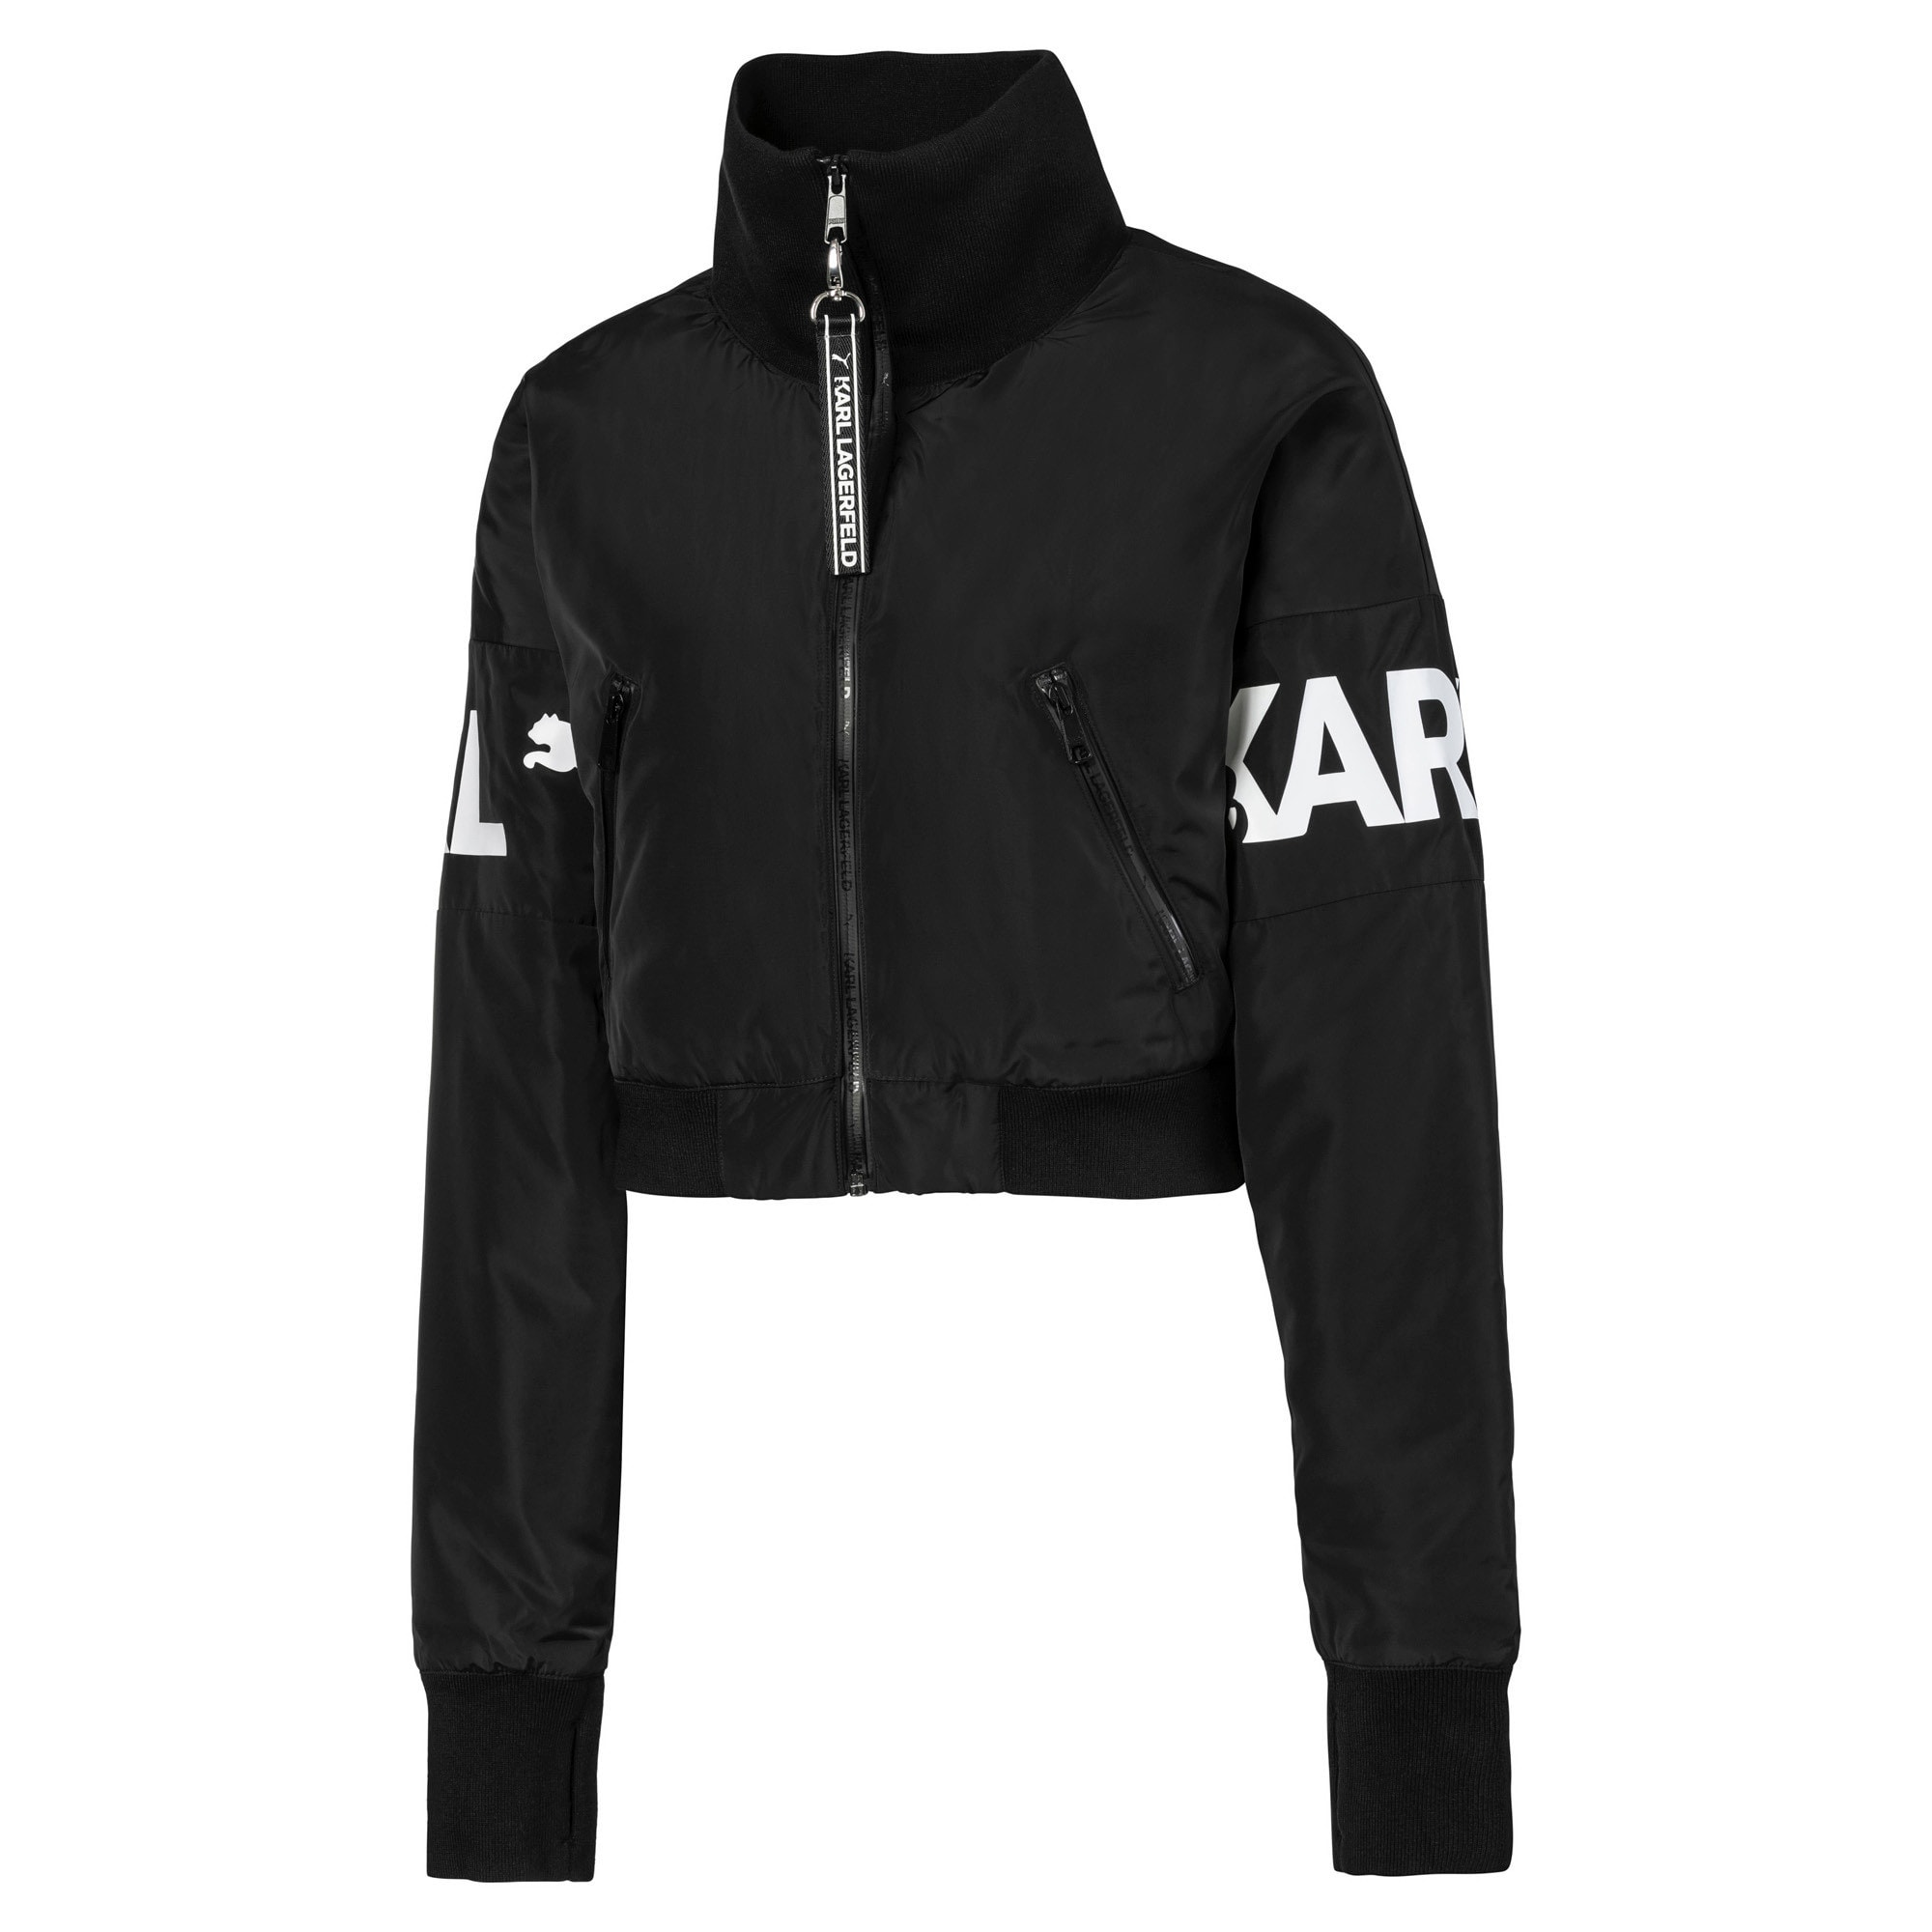 Thumbnail 5 of PUMA x KARL LAGERFELD Women's Bomber Jacket, Puma Black, medium